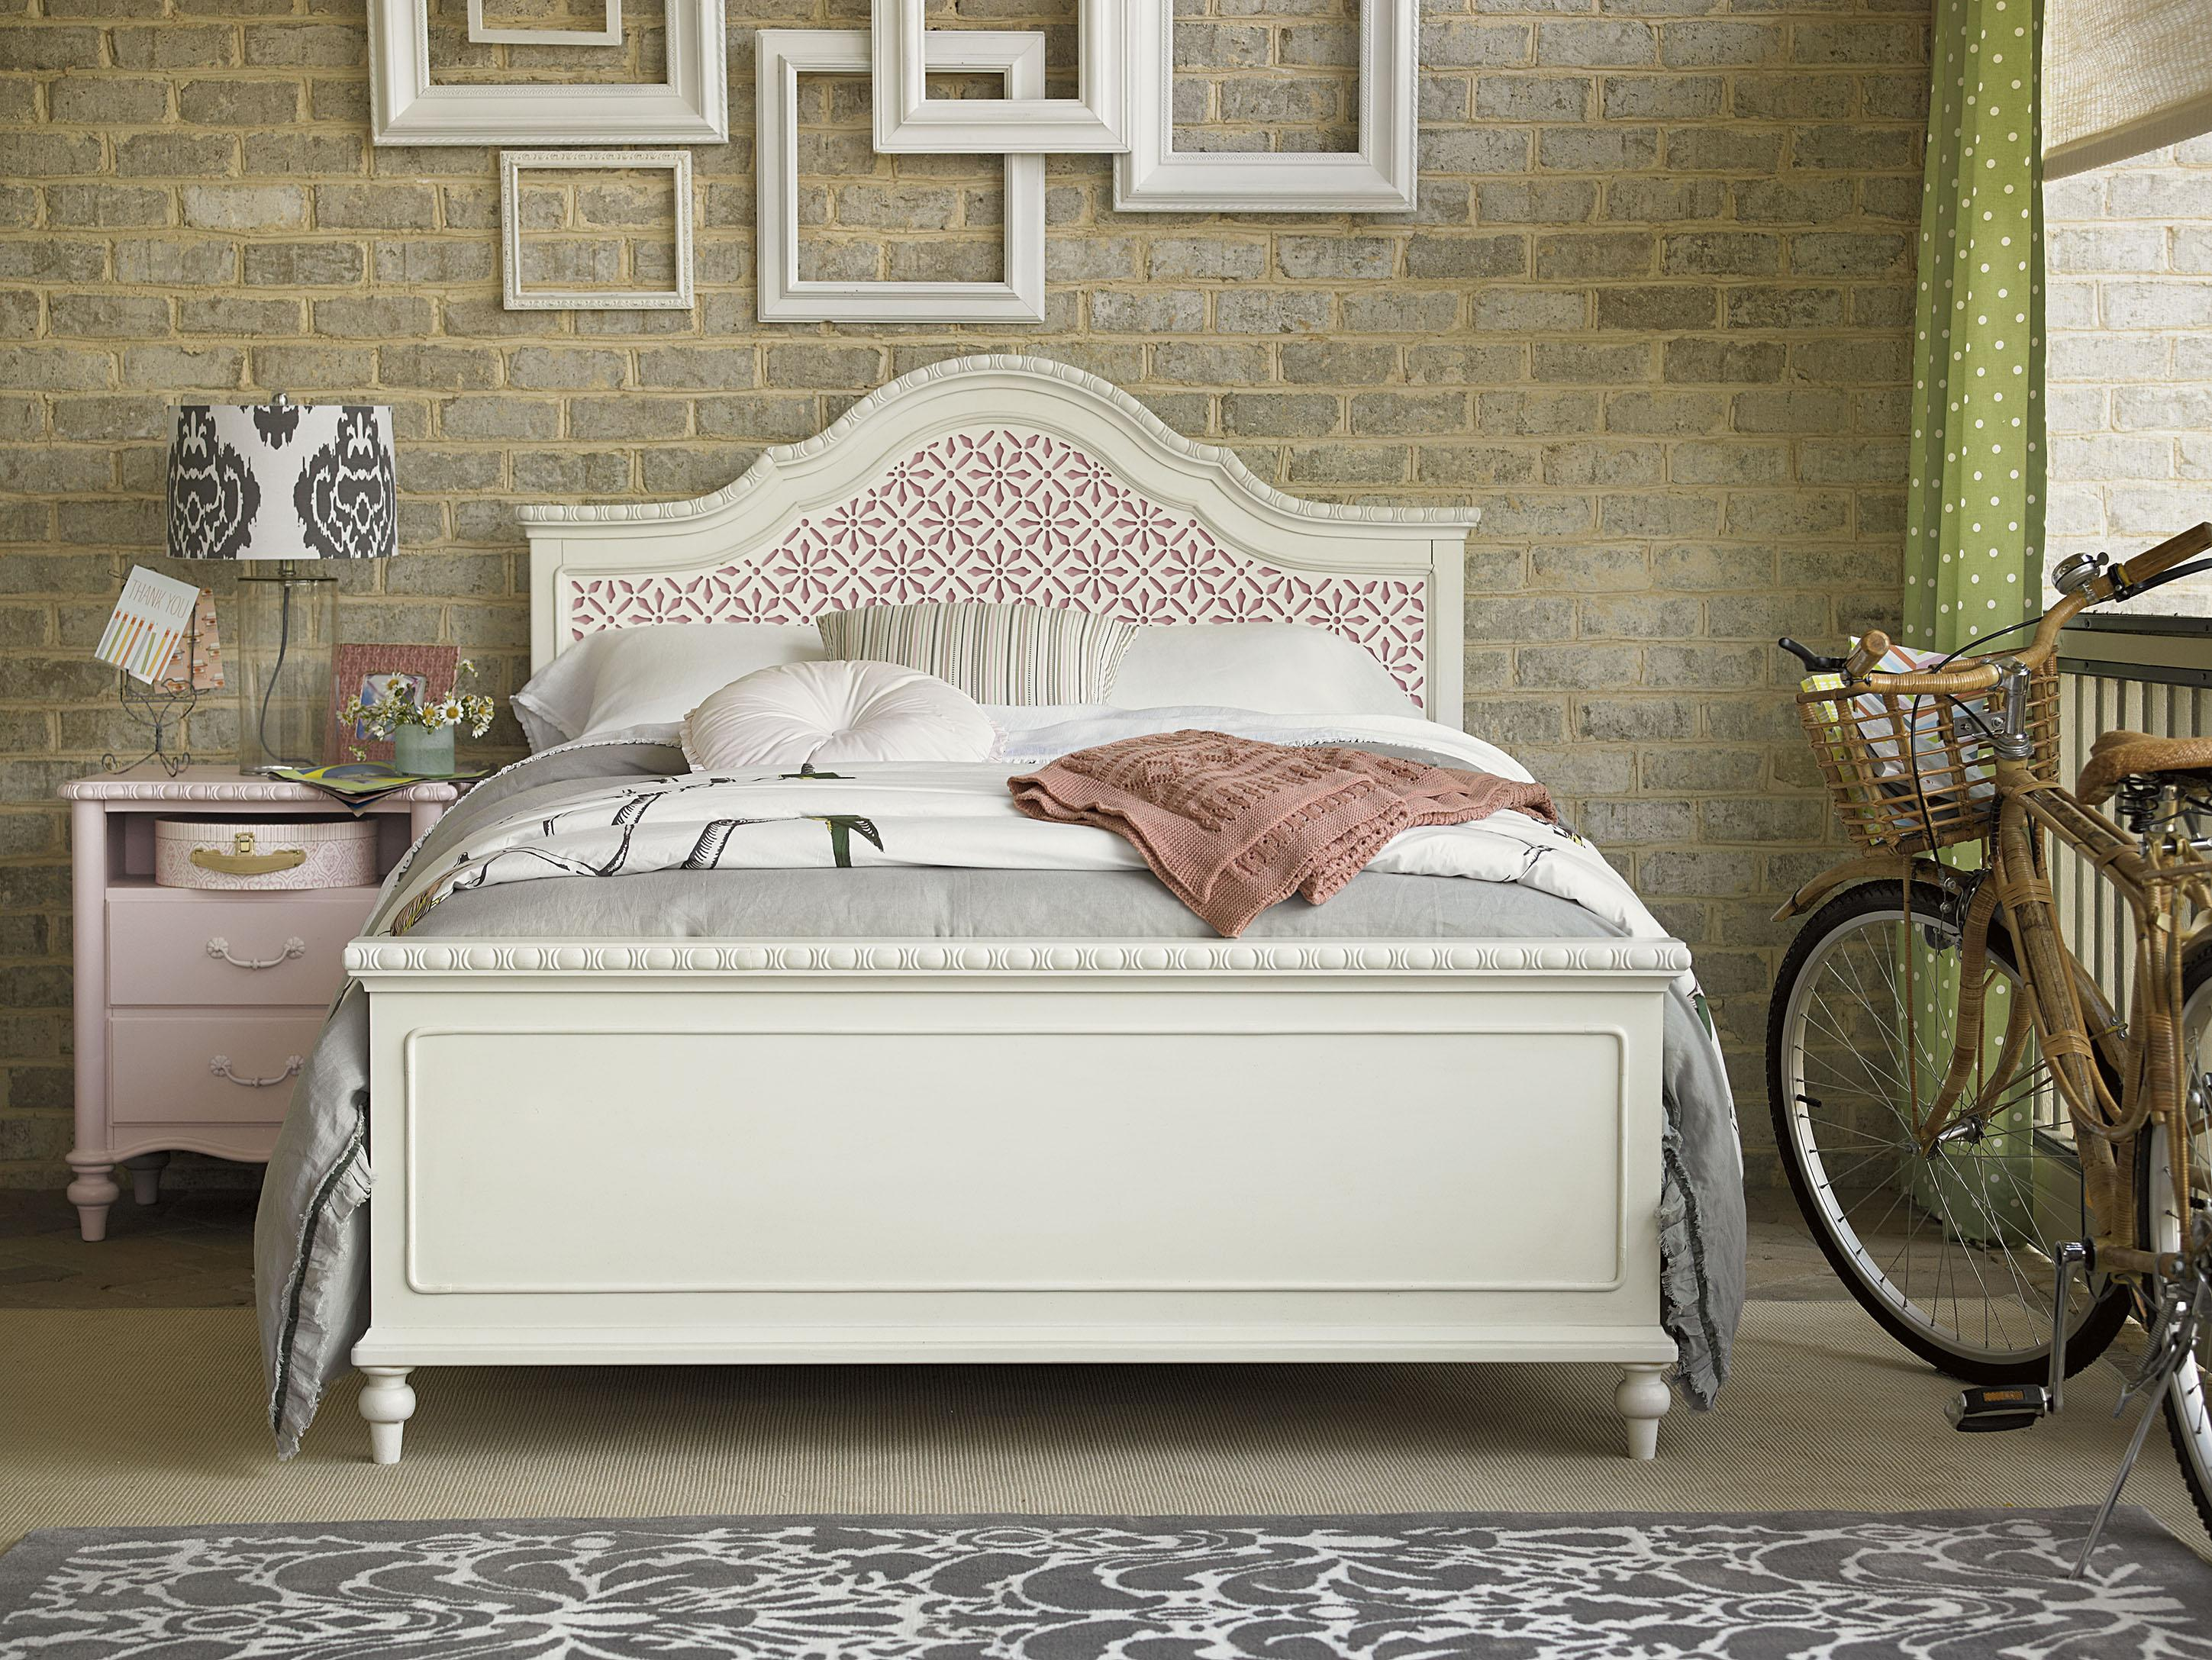 Smartstuff Bellamy Twin Trellis Bed Bedroom Group - Item Number: 330A T Bedroom Group 3